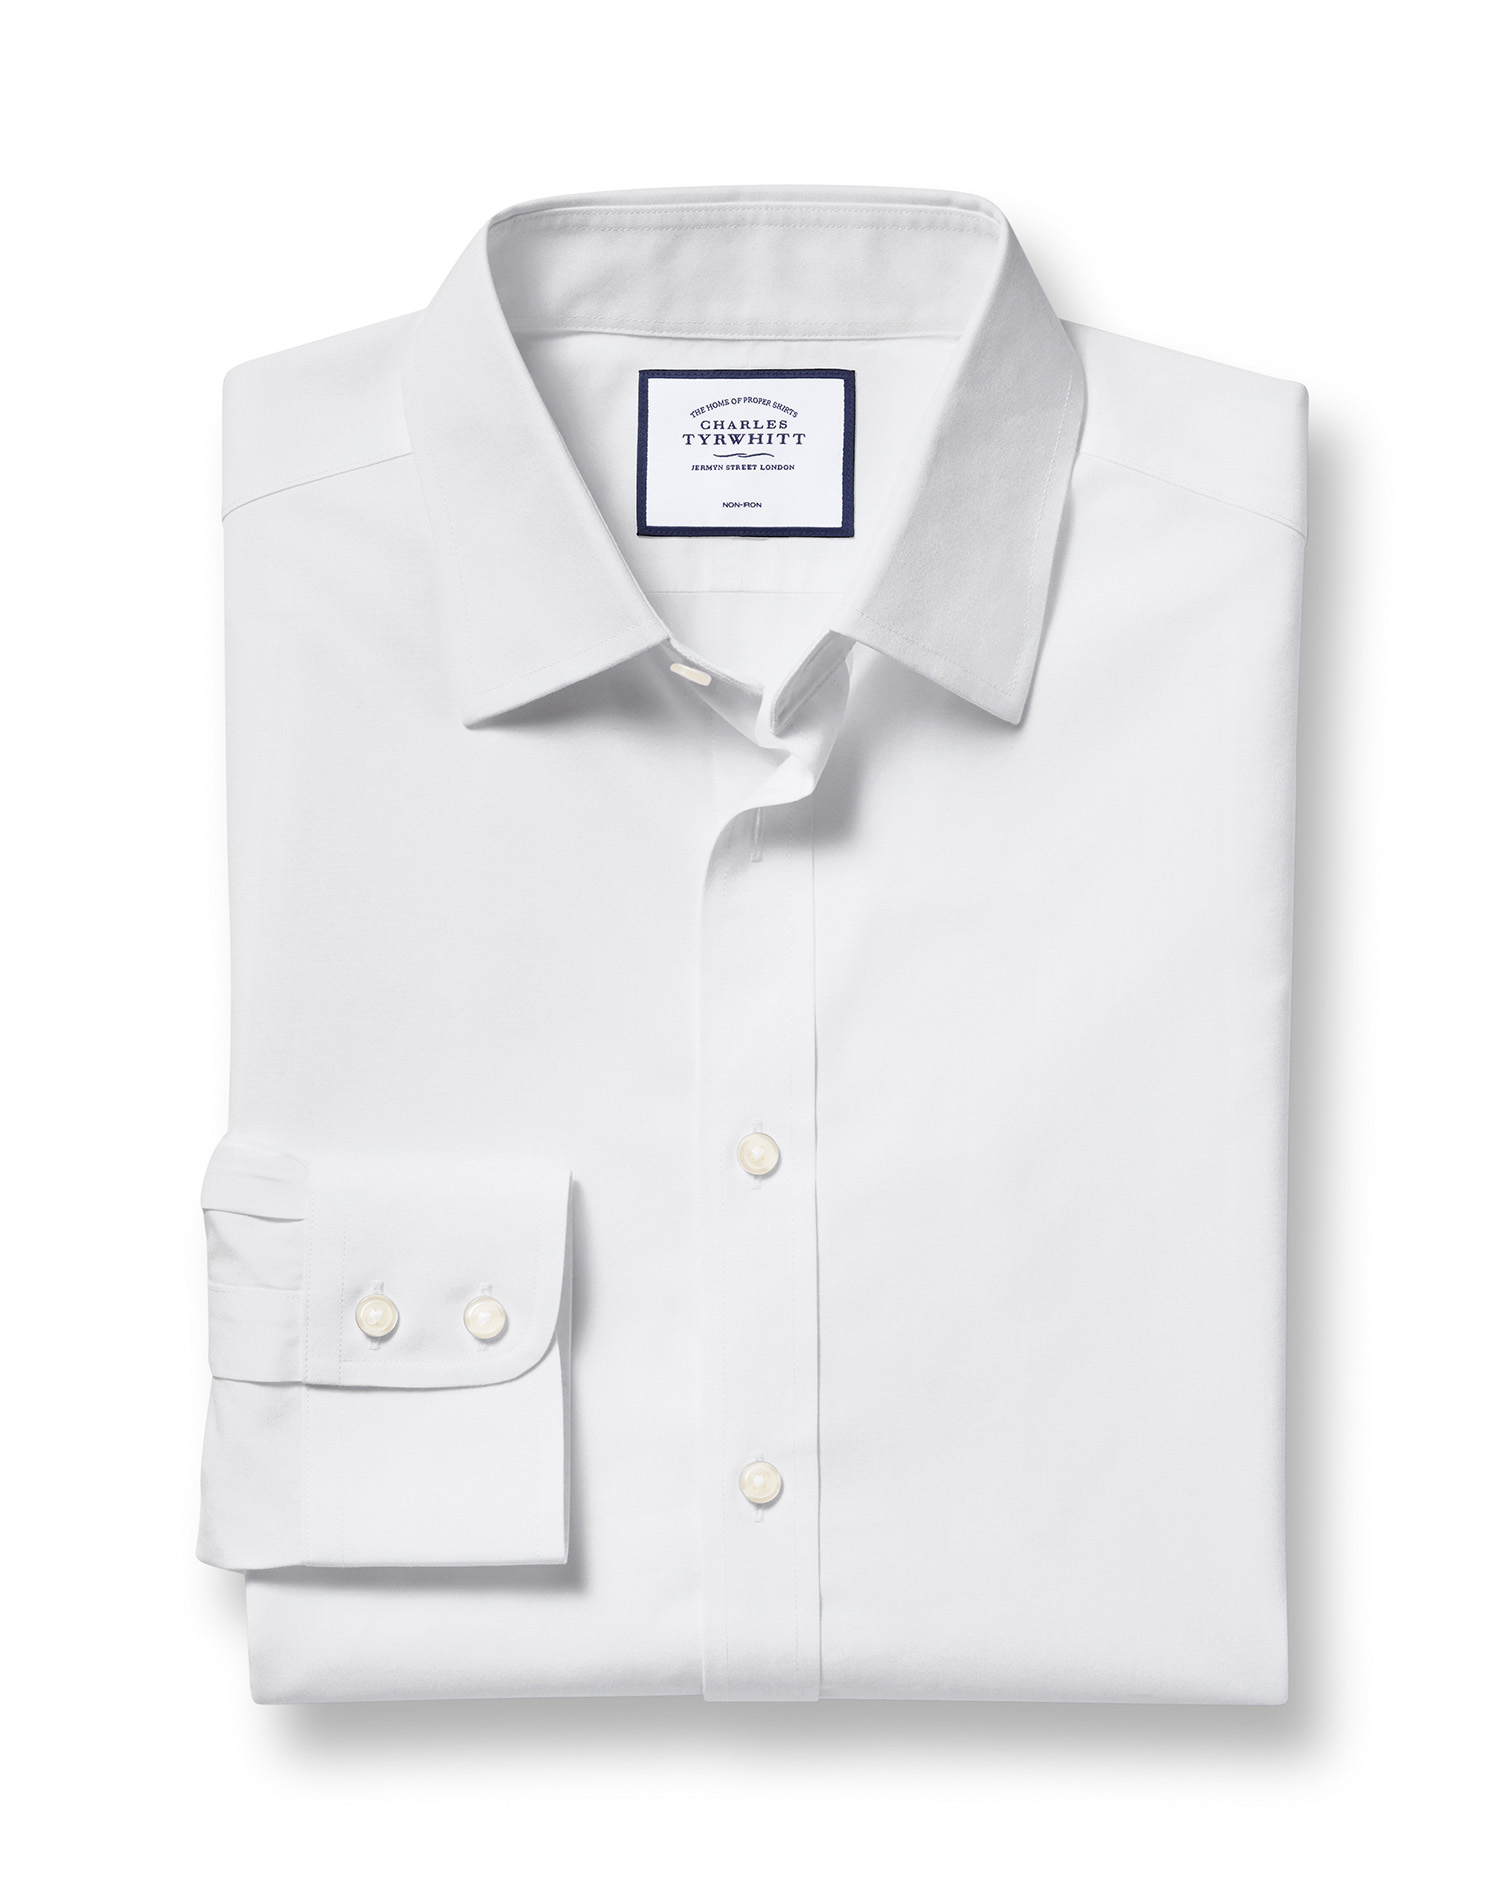 Slim Fit Non-Iron Poplin White Cotton Formal Shirt Double Cuff Size 17/34 by Charles Tyrwhitt